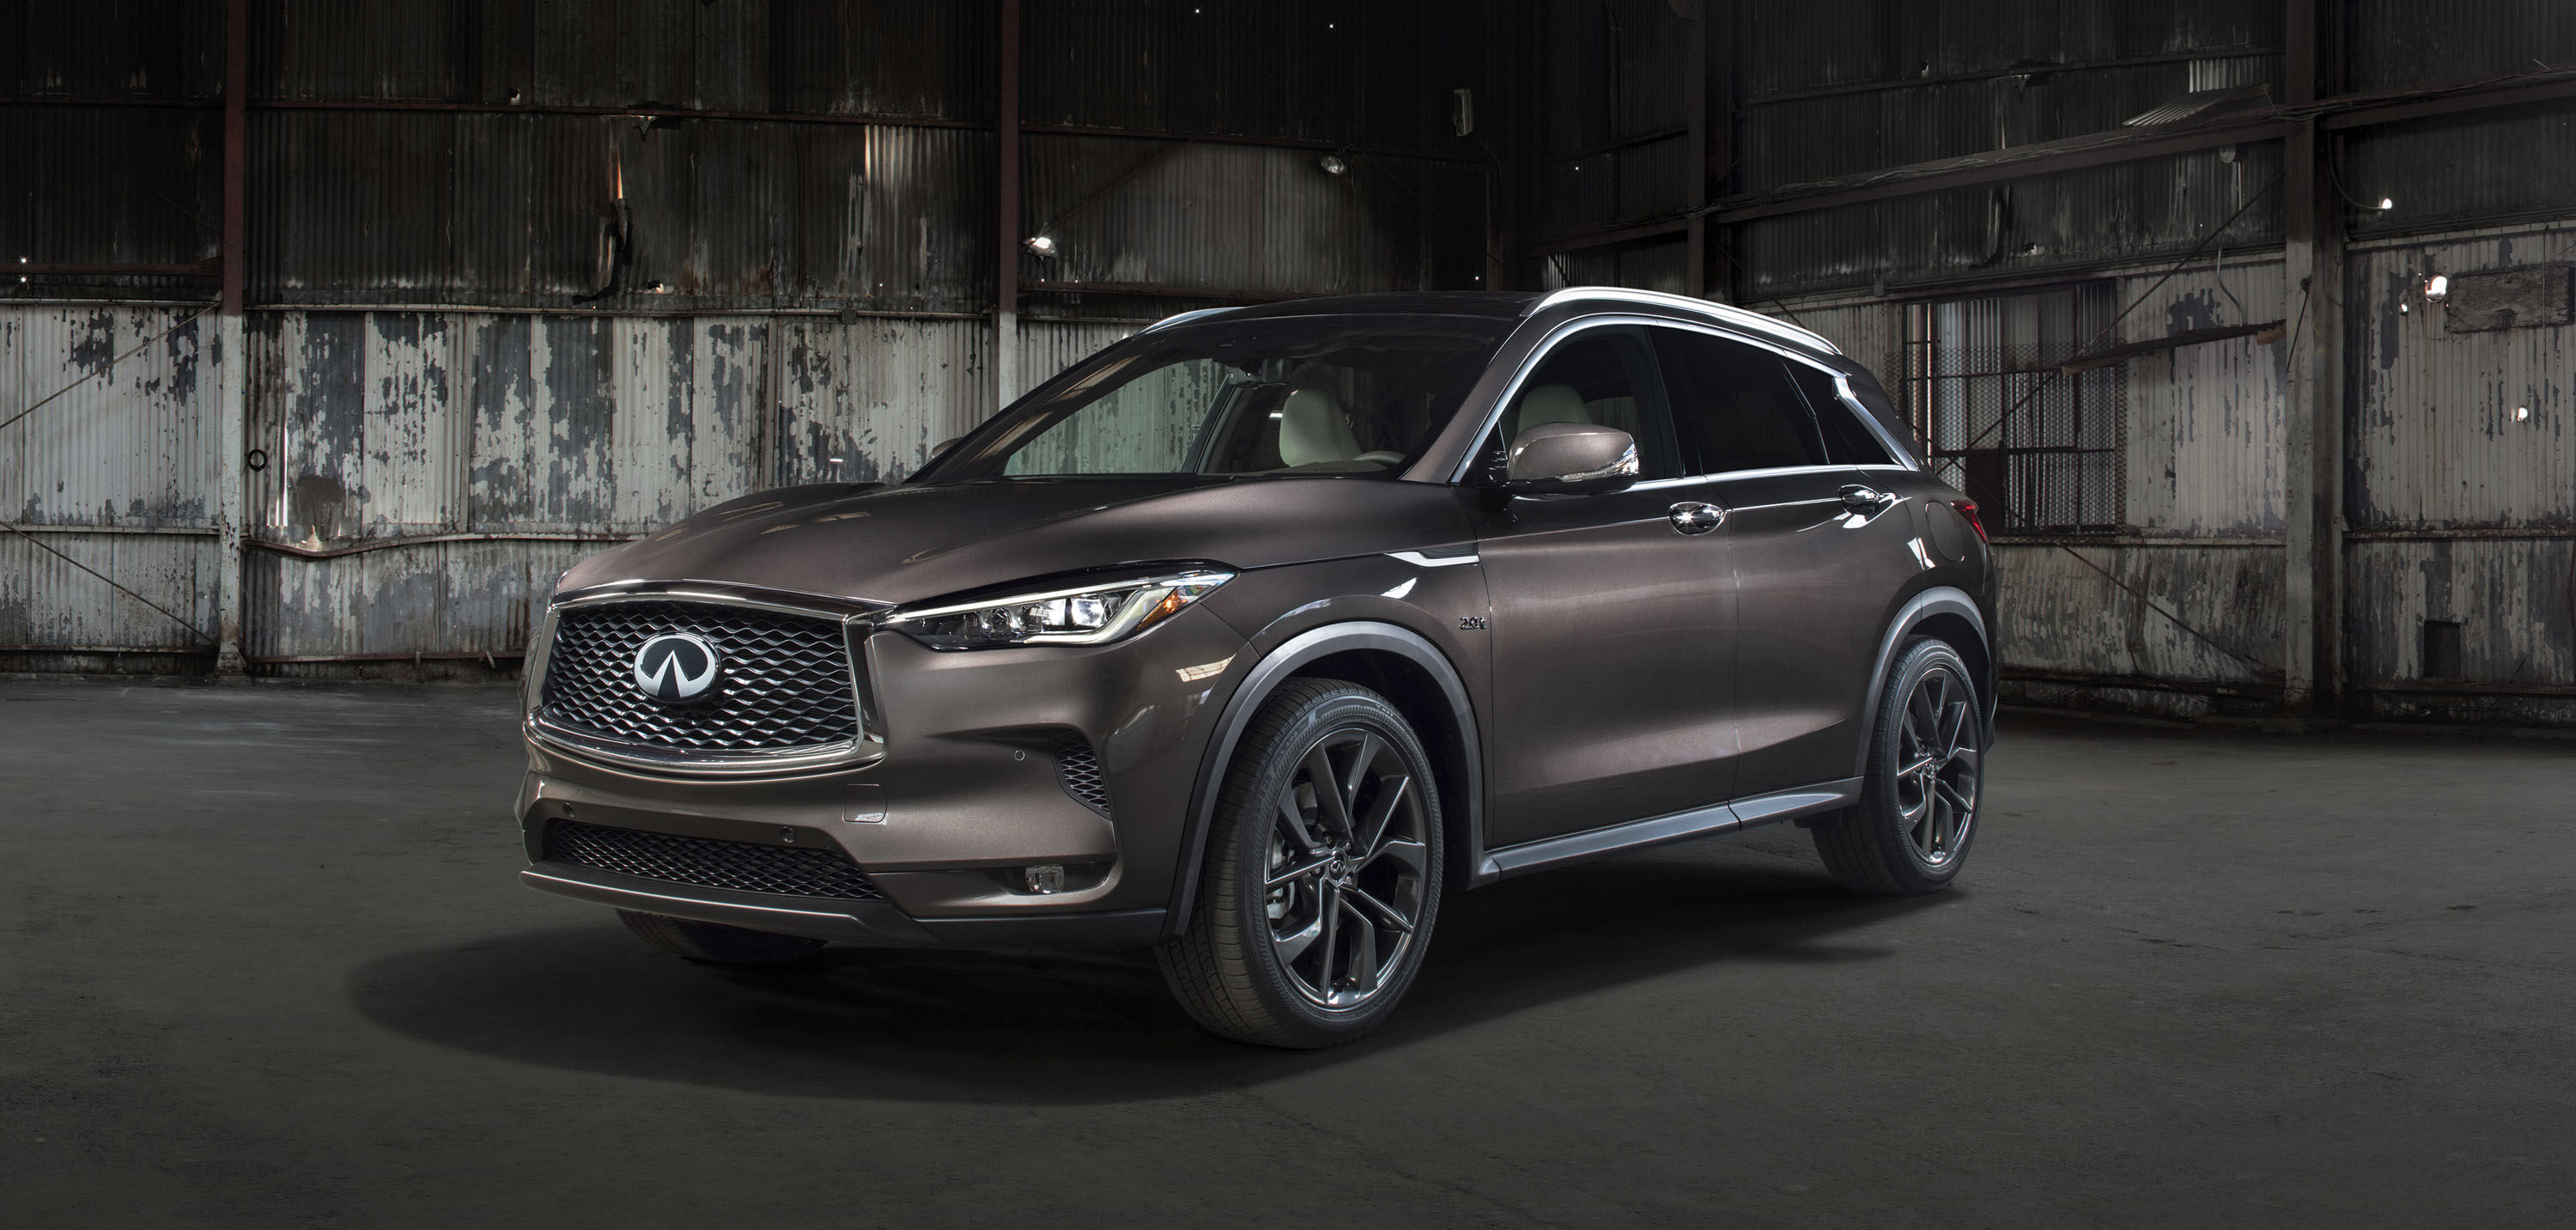 2018 infiniti qx50 pictures photos wallpapers top speed. Black Bedroom Furniture Sets. Home Design Ideas